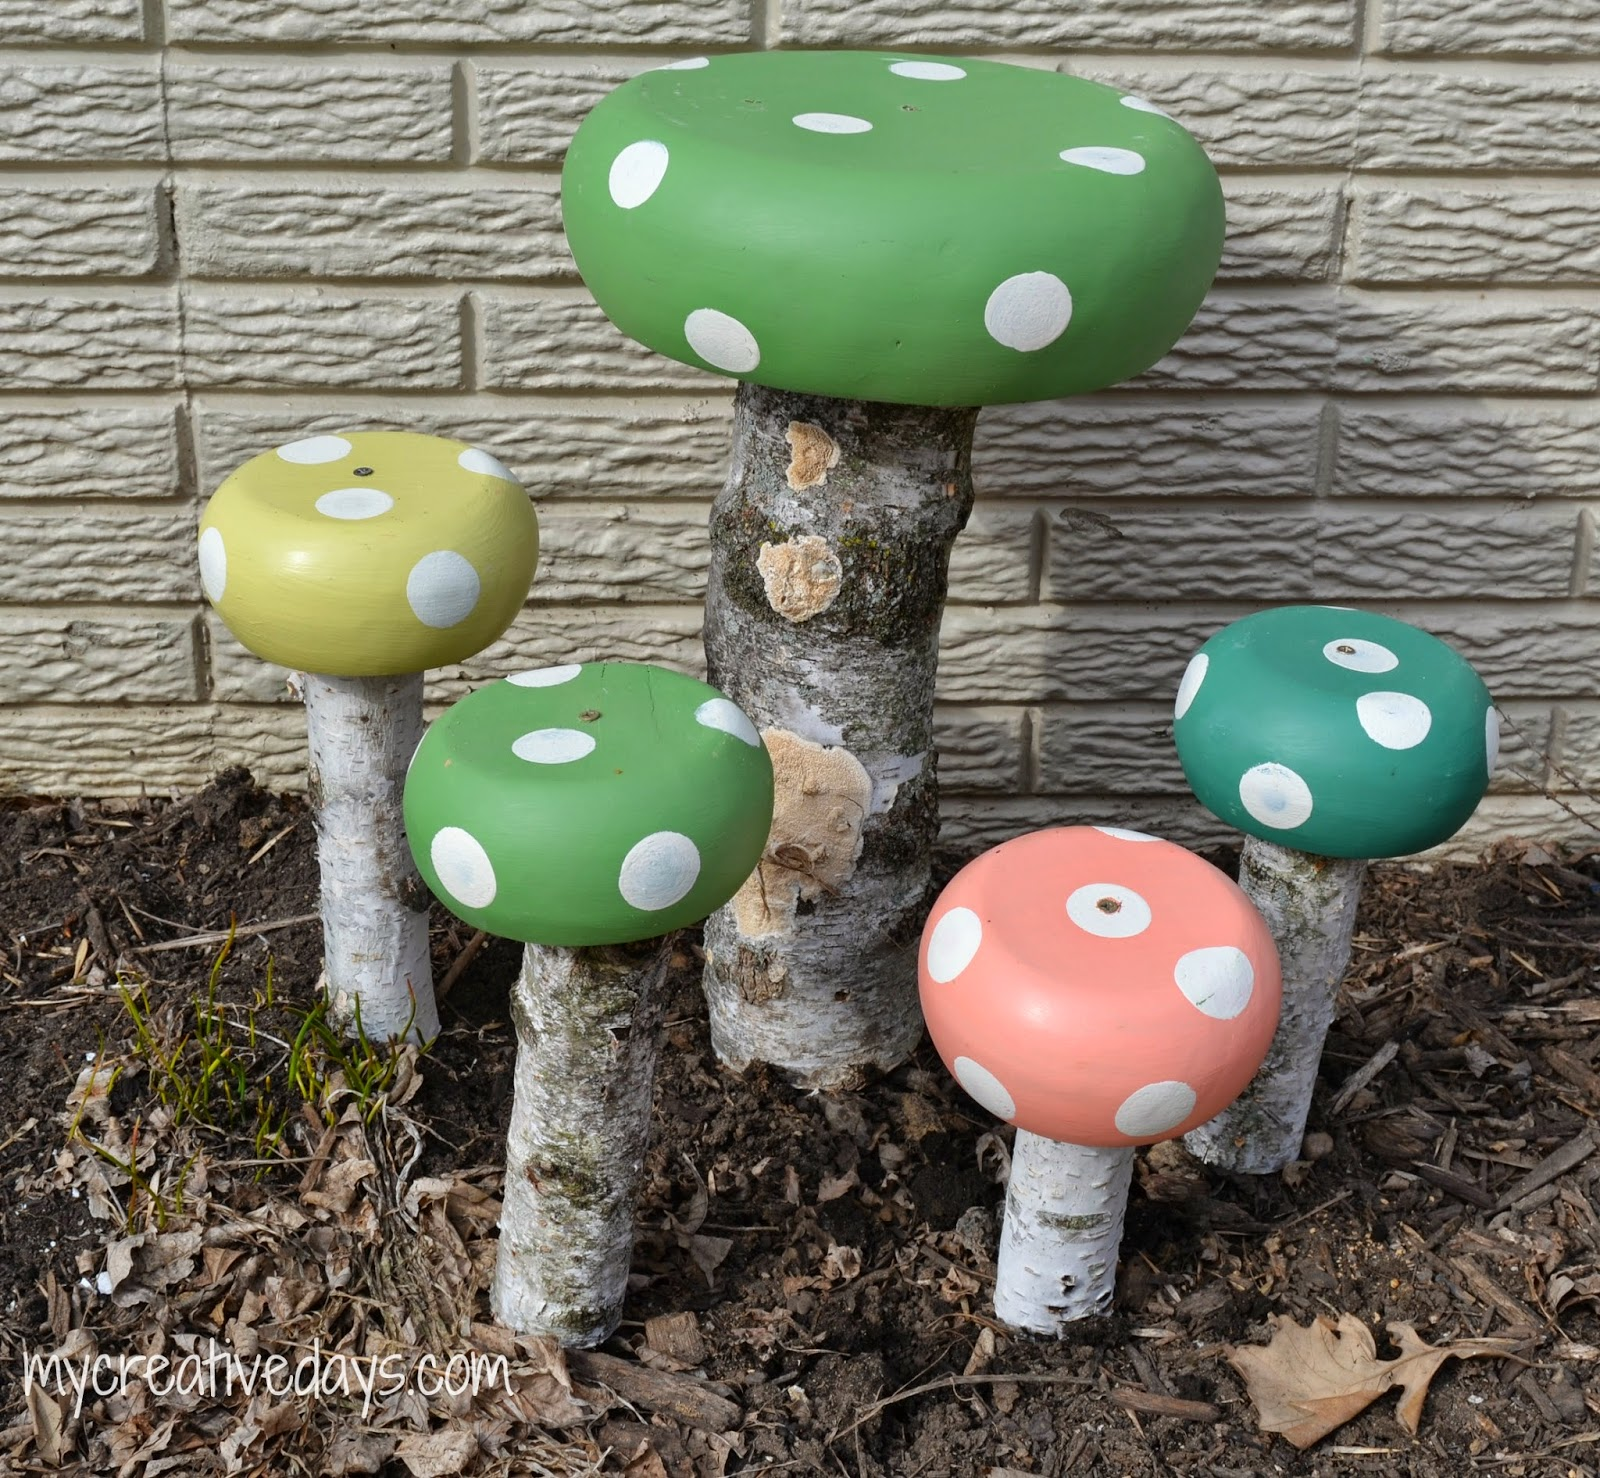 25 Adorable & Whimsical Spring Projects